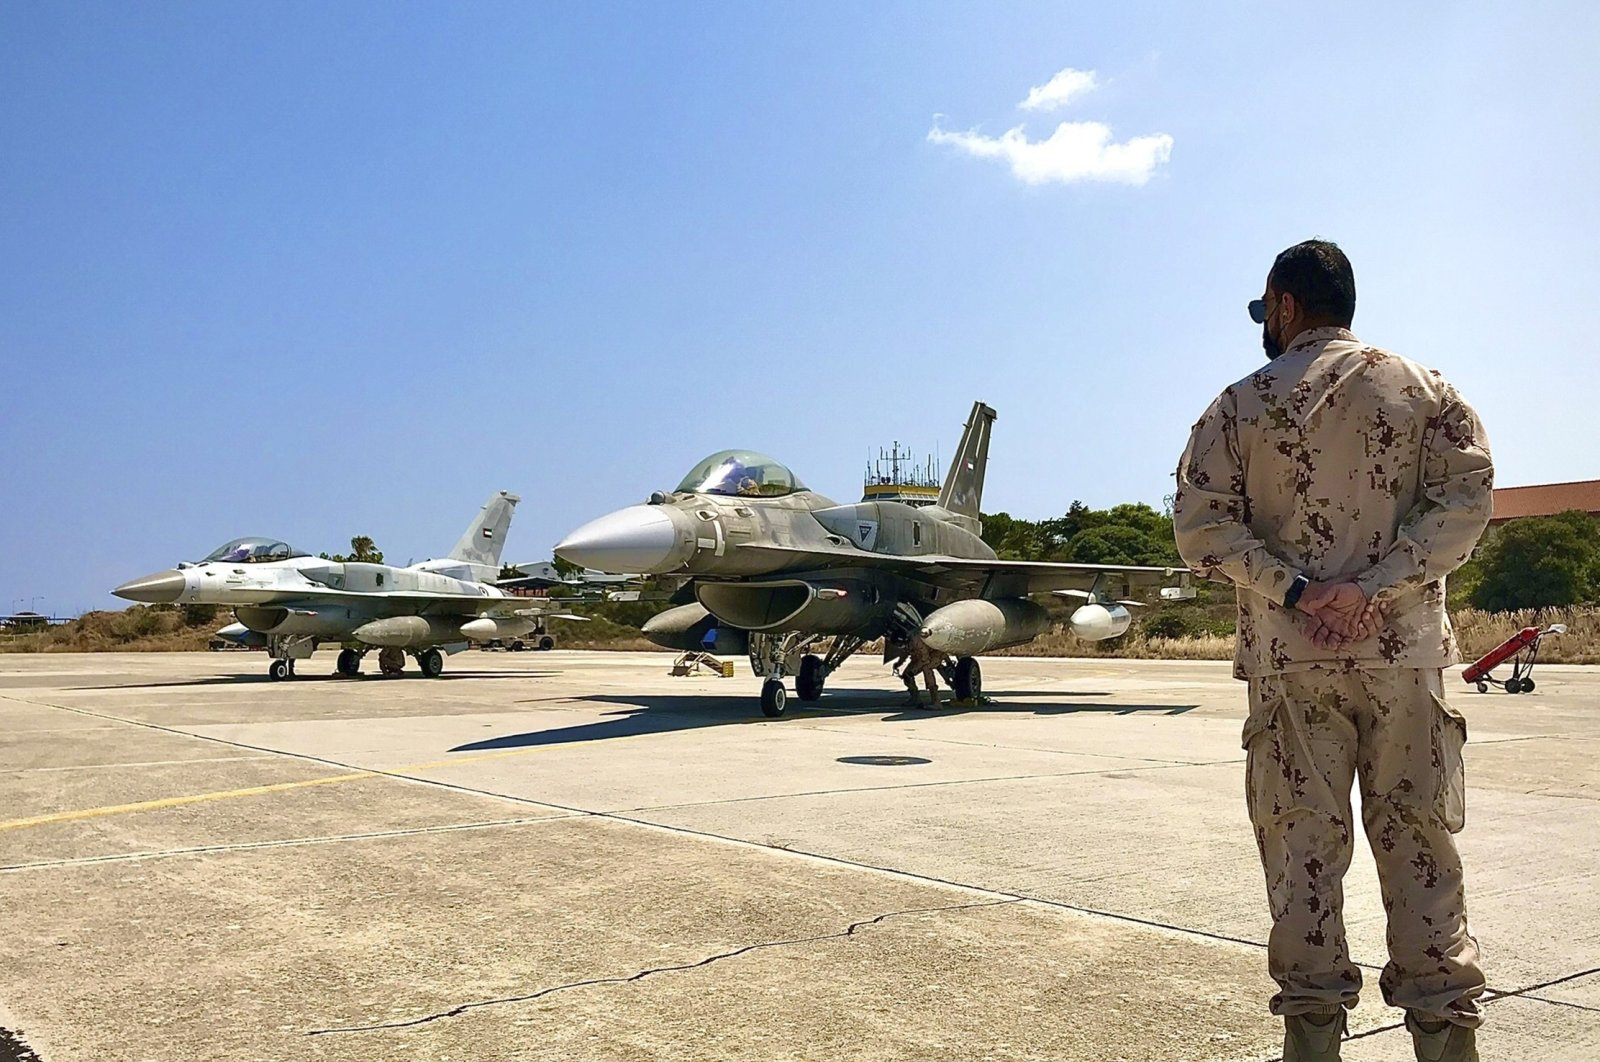 In this photo provided by the Greek Defense Ministry, air force jets from the United Arab Emirates (UAE) arrive at the Souda air base to take part in joint training with Greek forces, on the southern island of Crete, Greece, Aug. 27, 2020. (AP Photo)